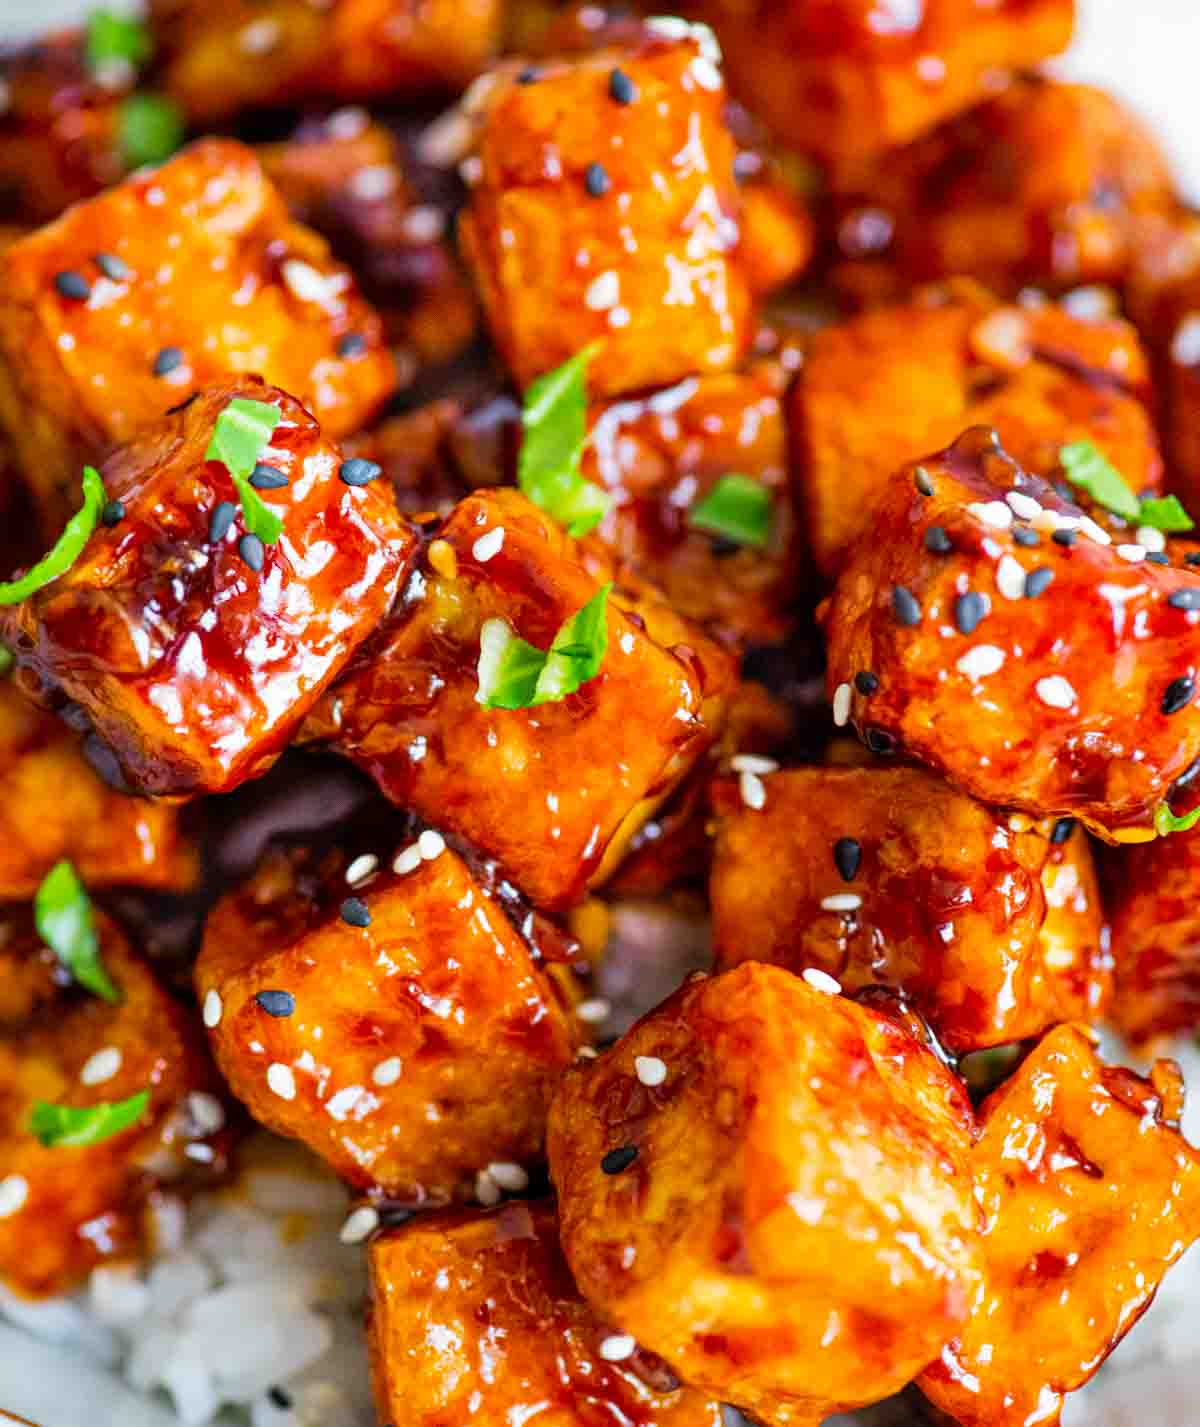 Close up of crispy tofu covered in sauce, garnished in sesame seeds